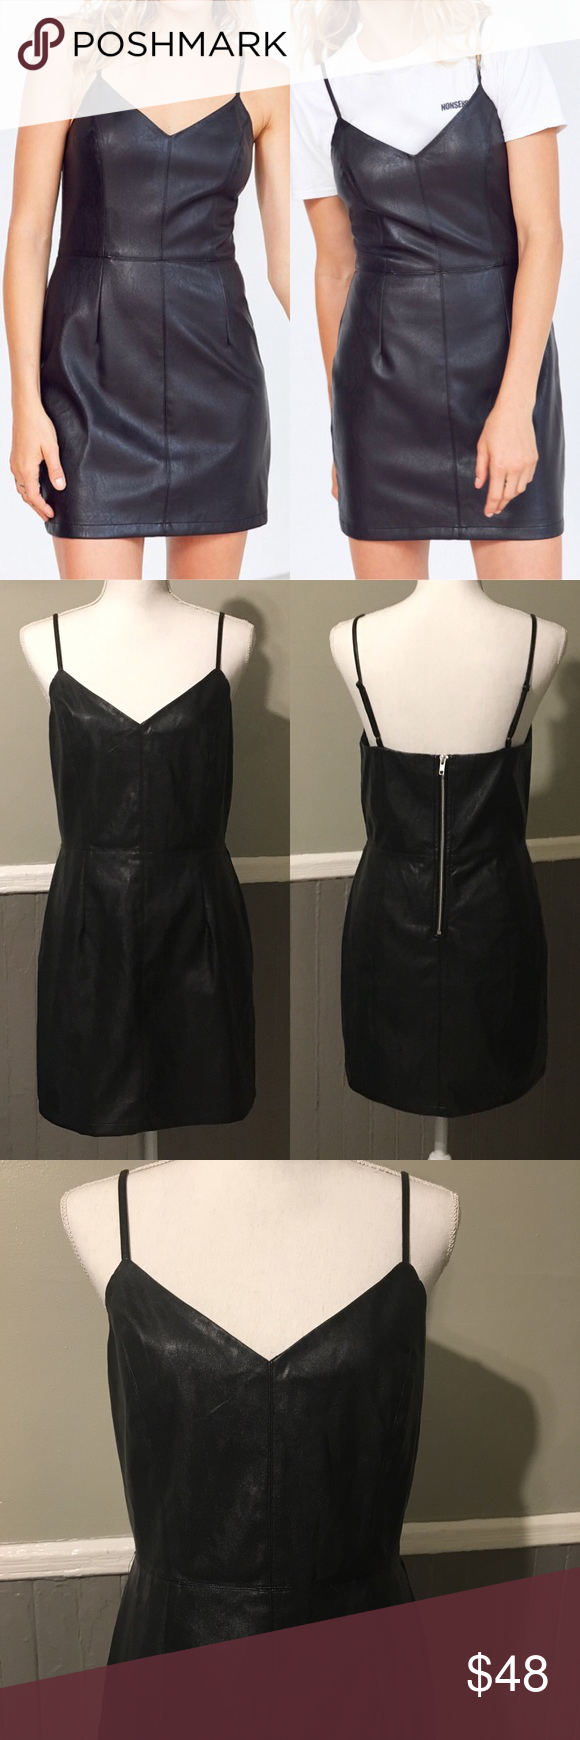 c3369d0541 Silence + Noise Faux Leather Mini Dress Size L Black Adjustable straps.  Back zipper. Label marked to avoid store returns. silence + noise Dresses